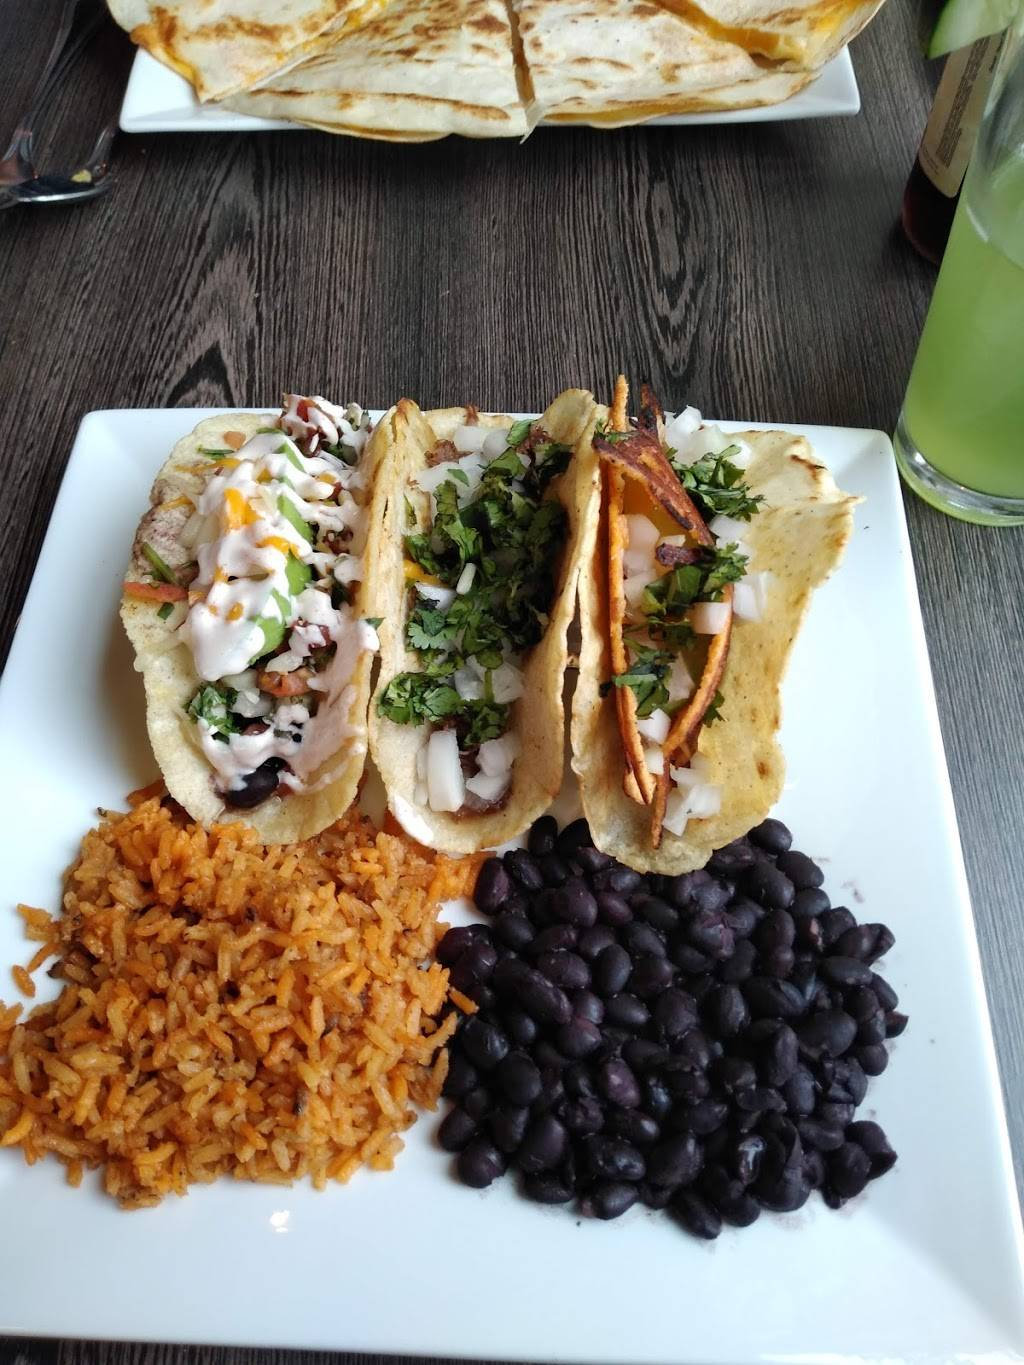 Taco Bout it Mexican Fusion | restaurant | 344 River St, Manistee, MI 49660, USA | 2318874441 OR +1 231-887-4441